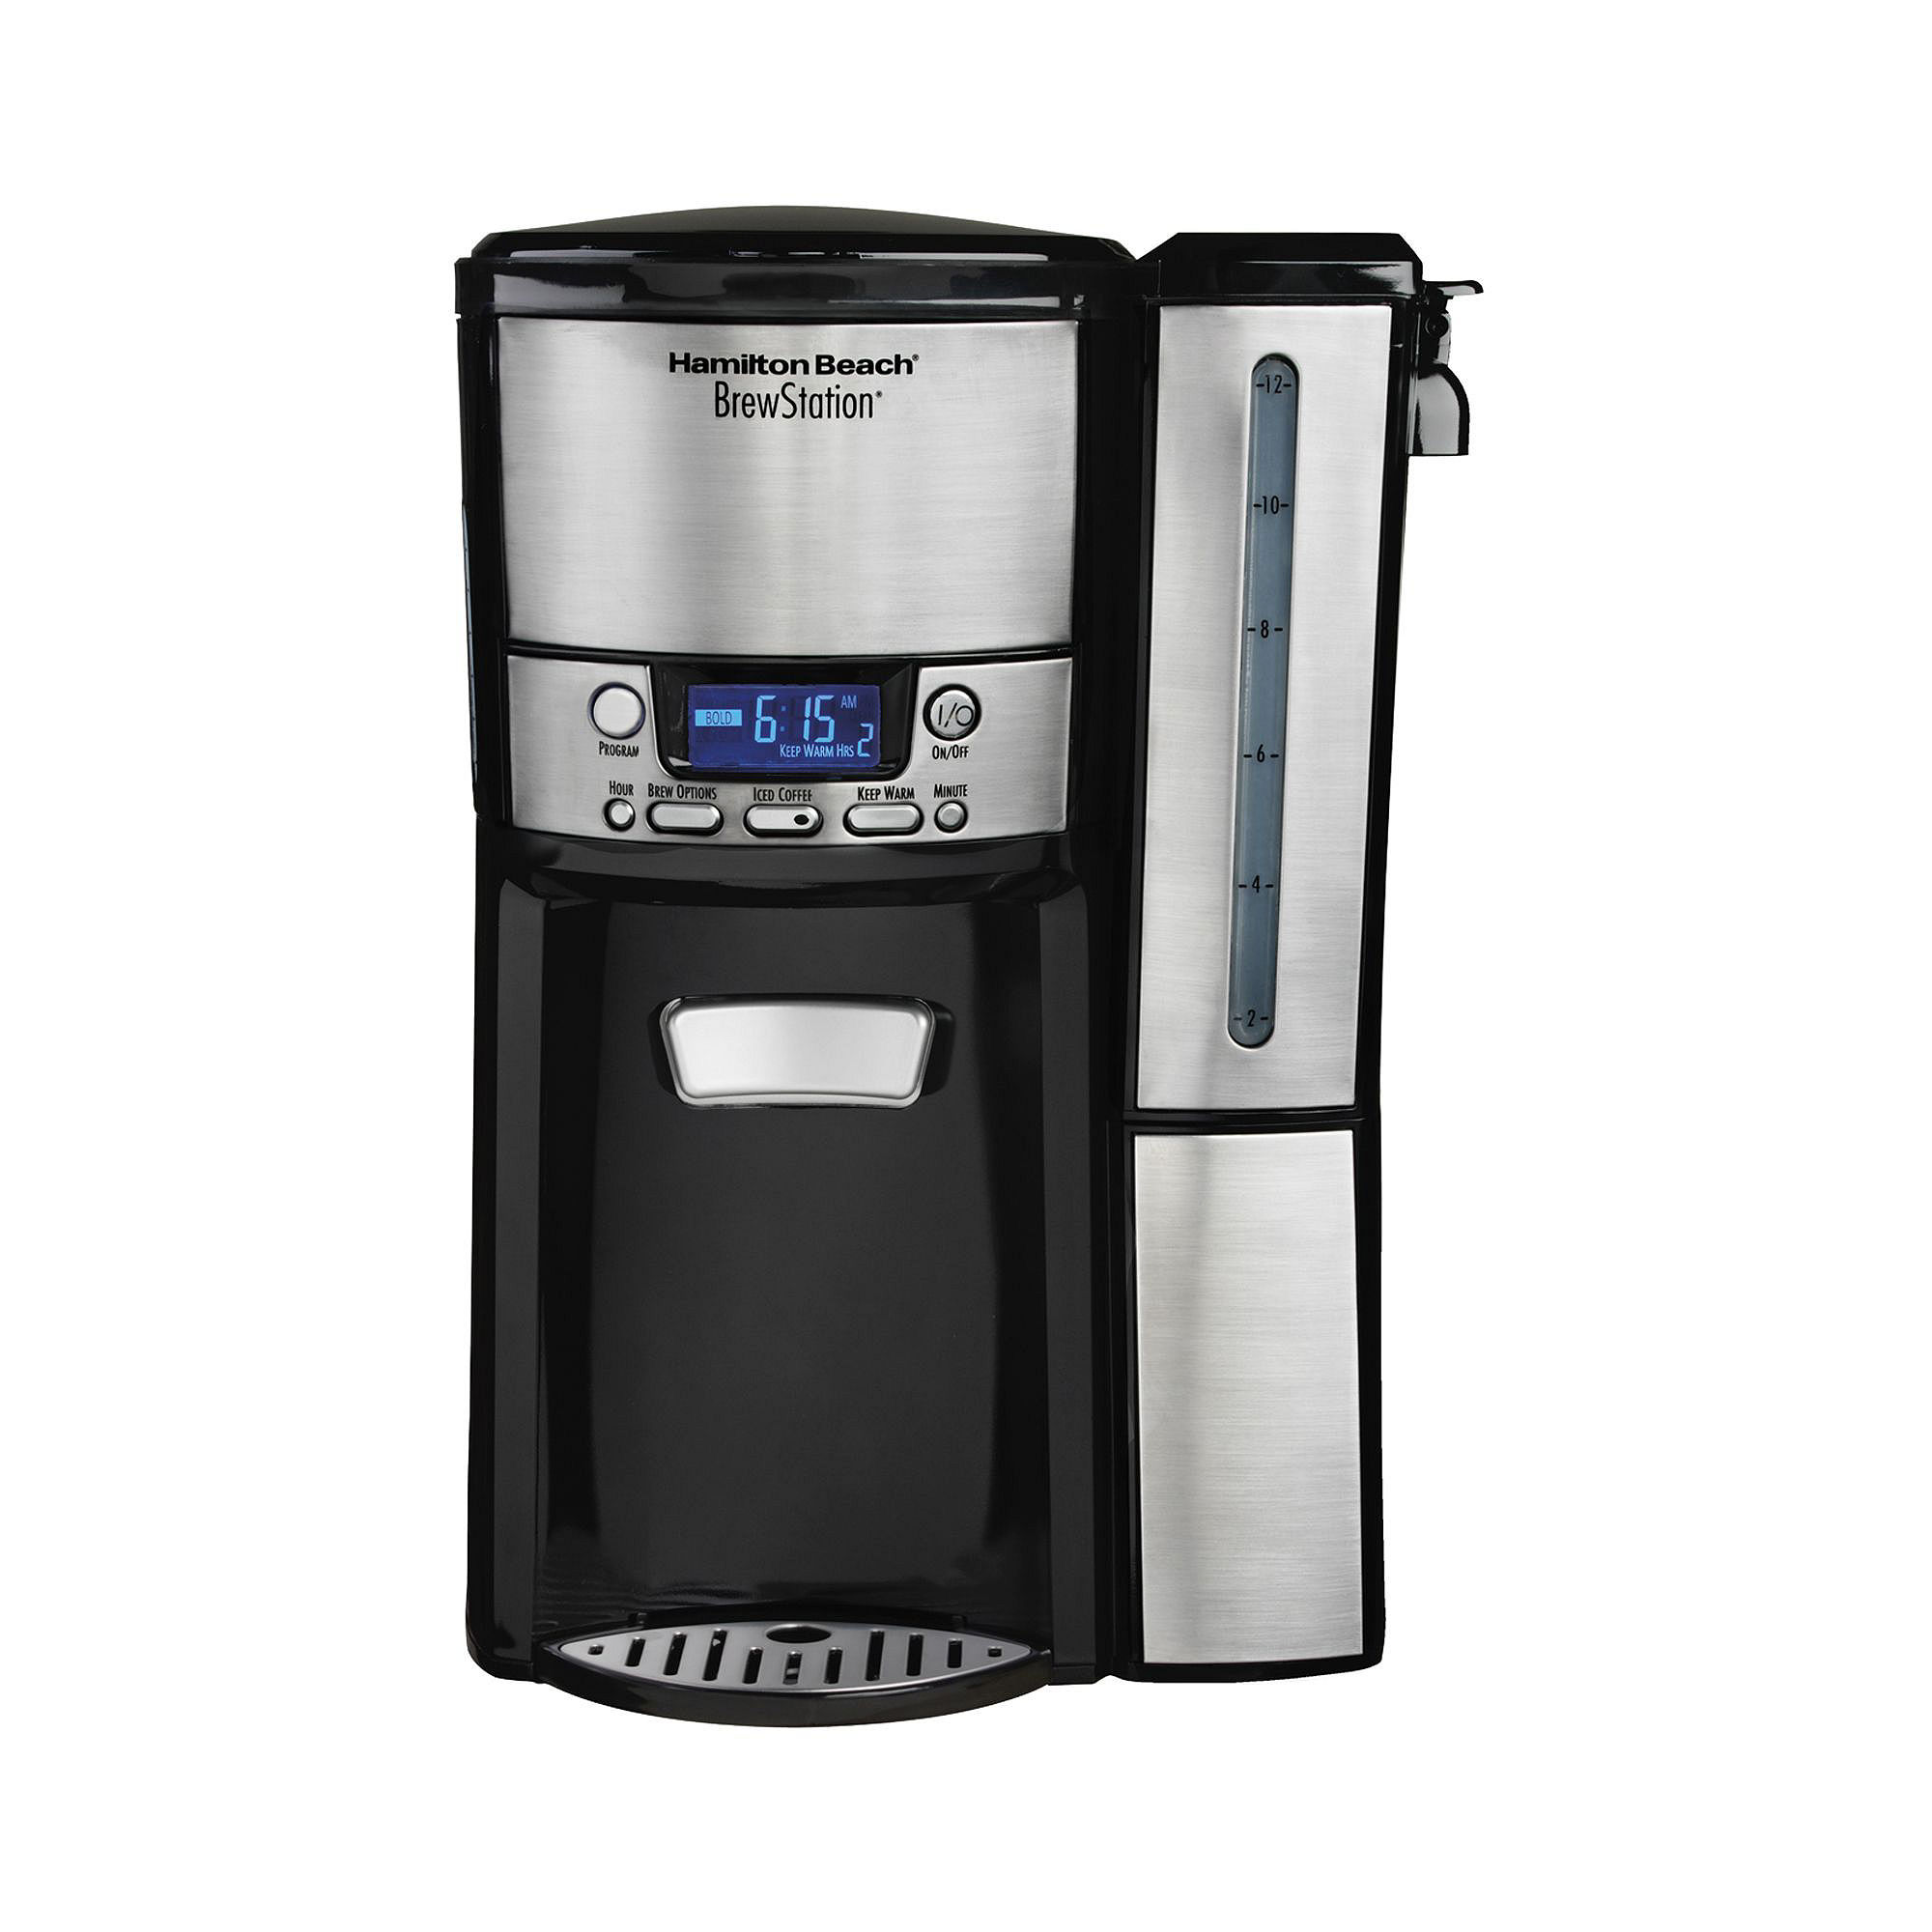 Hamilton Beach 12-Cup BrewStation Dispensing Coffee Maker with Removable Reservoir